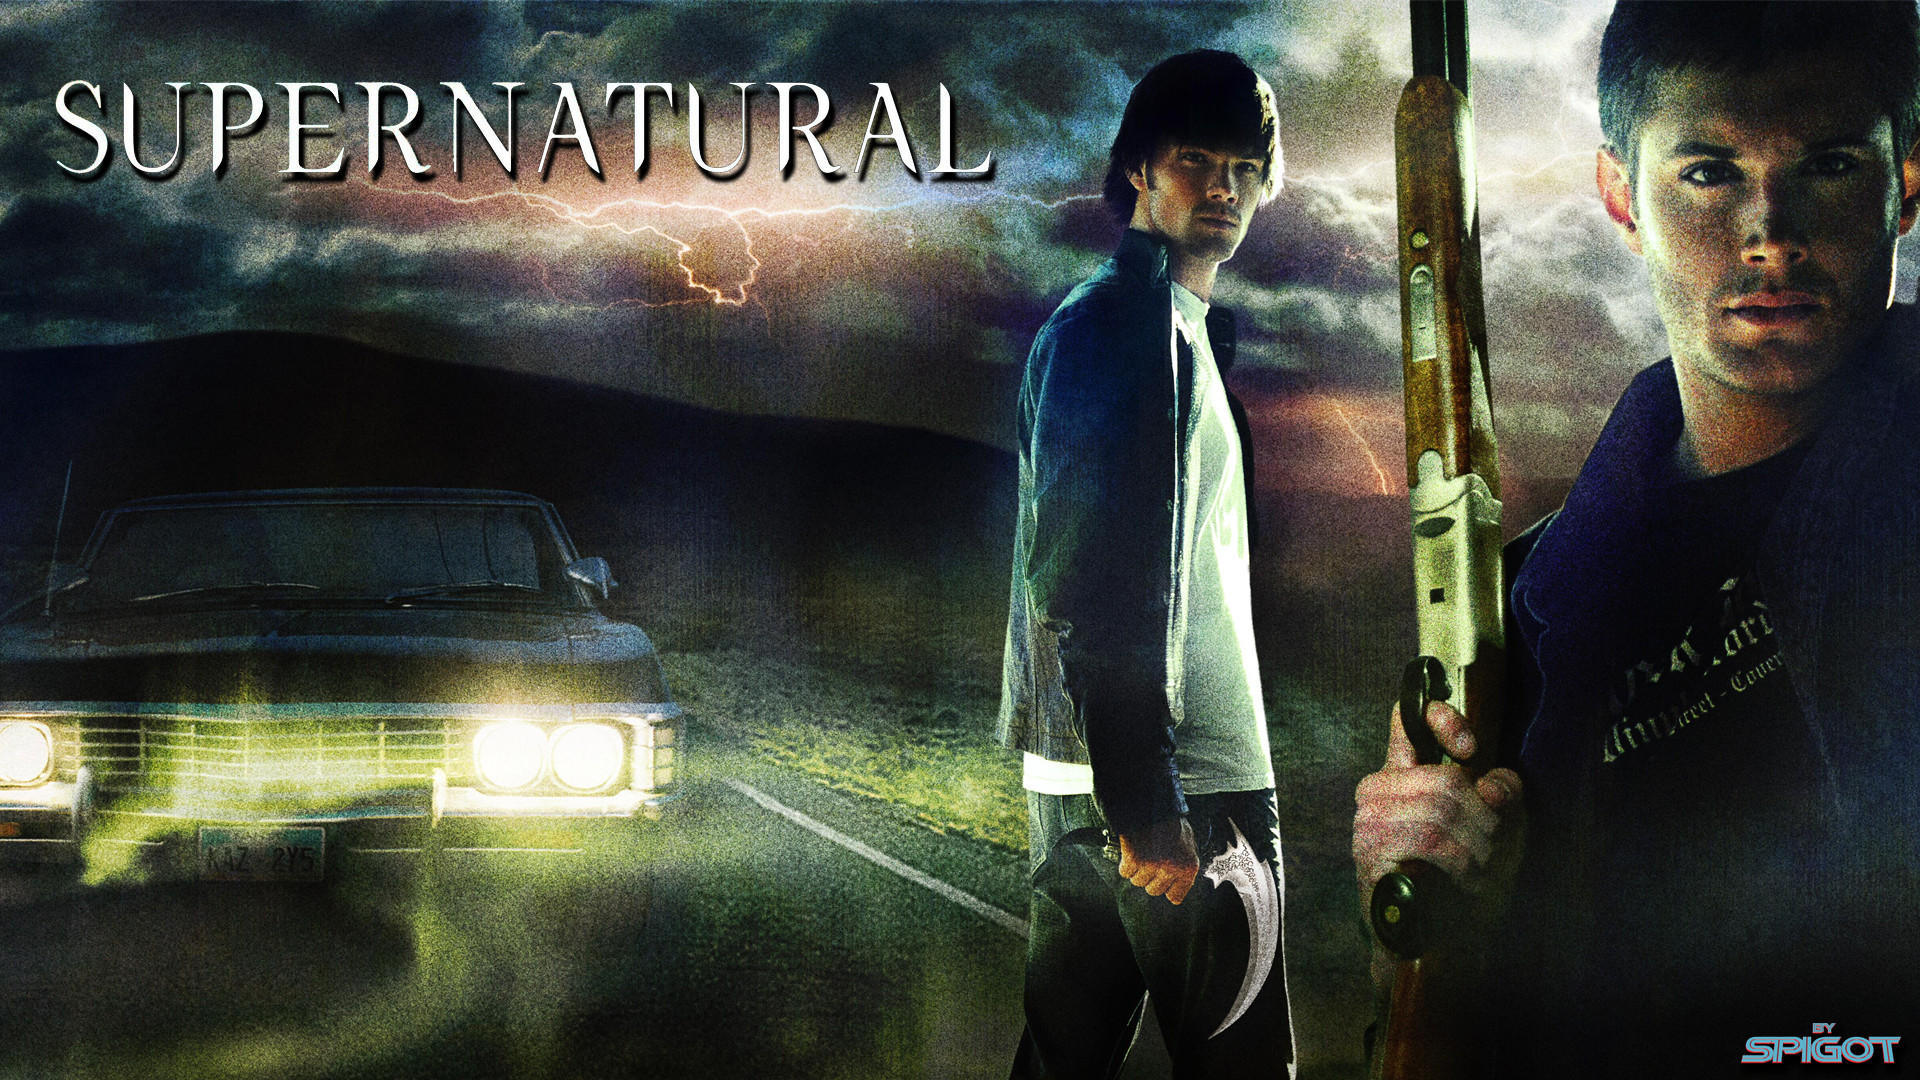 Tags:Supernatural, Wallpaper Posted in Desktop Wallpaper's | Leave a  Comment »